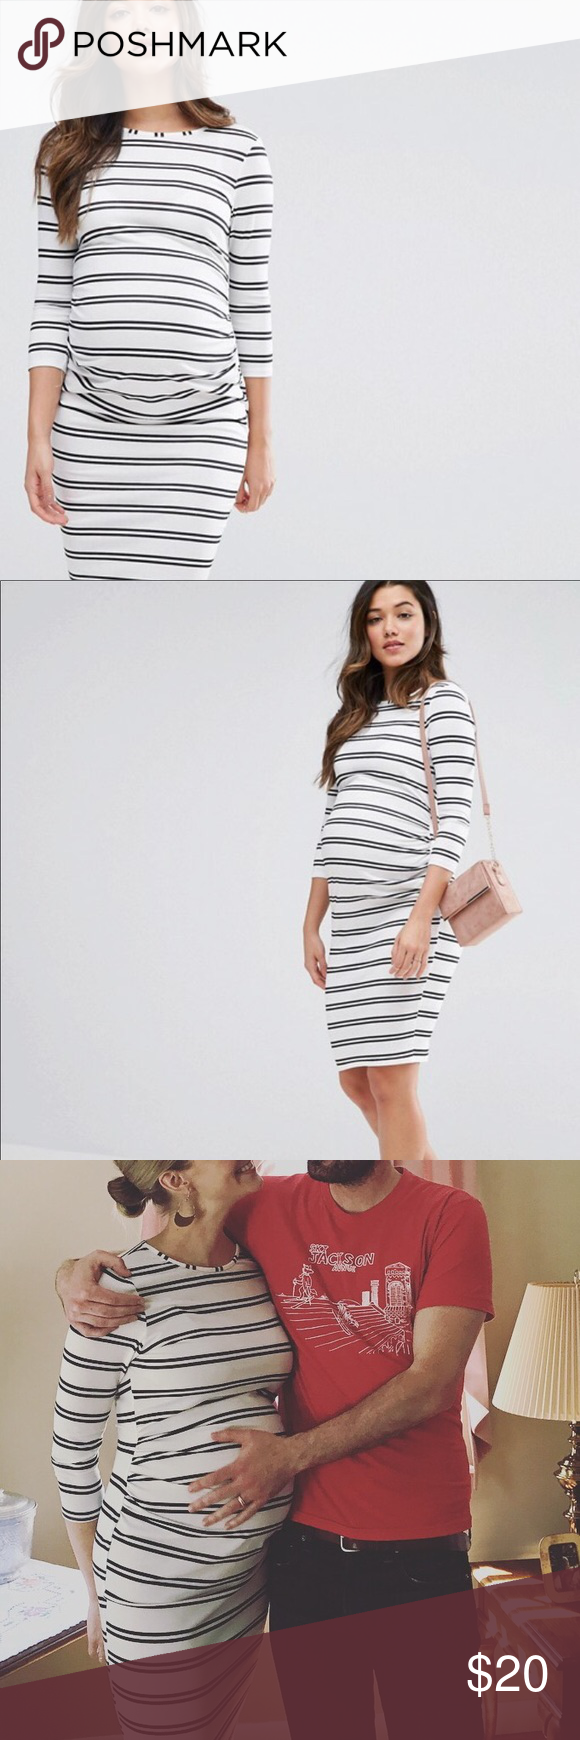 c007ca493f3 ASOS Maternity Twin Stripe Bodycon Dress This dress was by far the most  flattering dress I